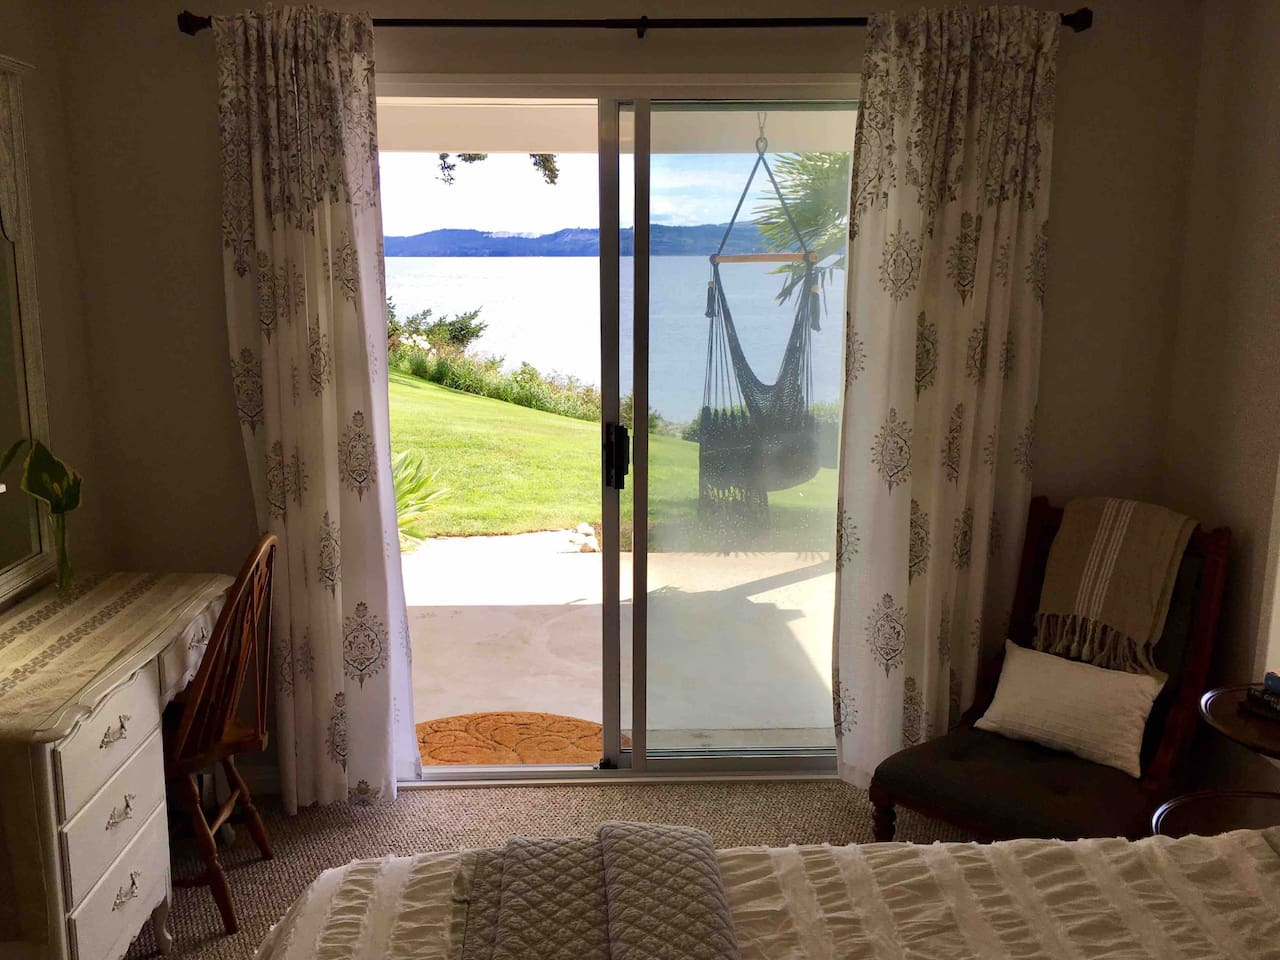 Bright ocean view bedroom with sliding doors leading to private patio.